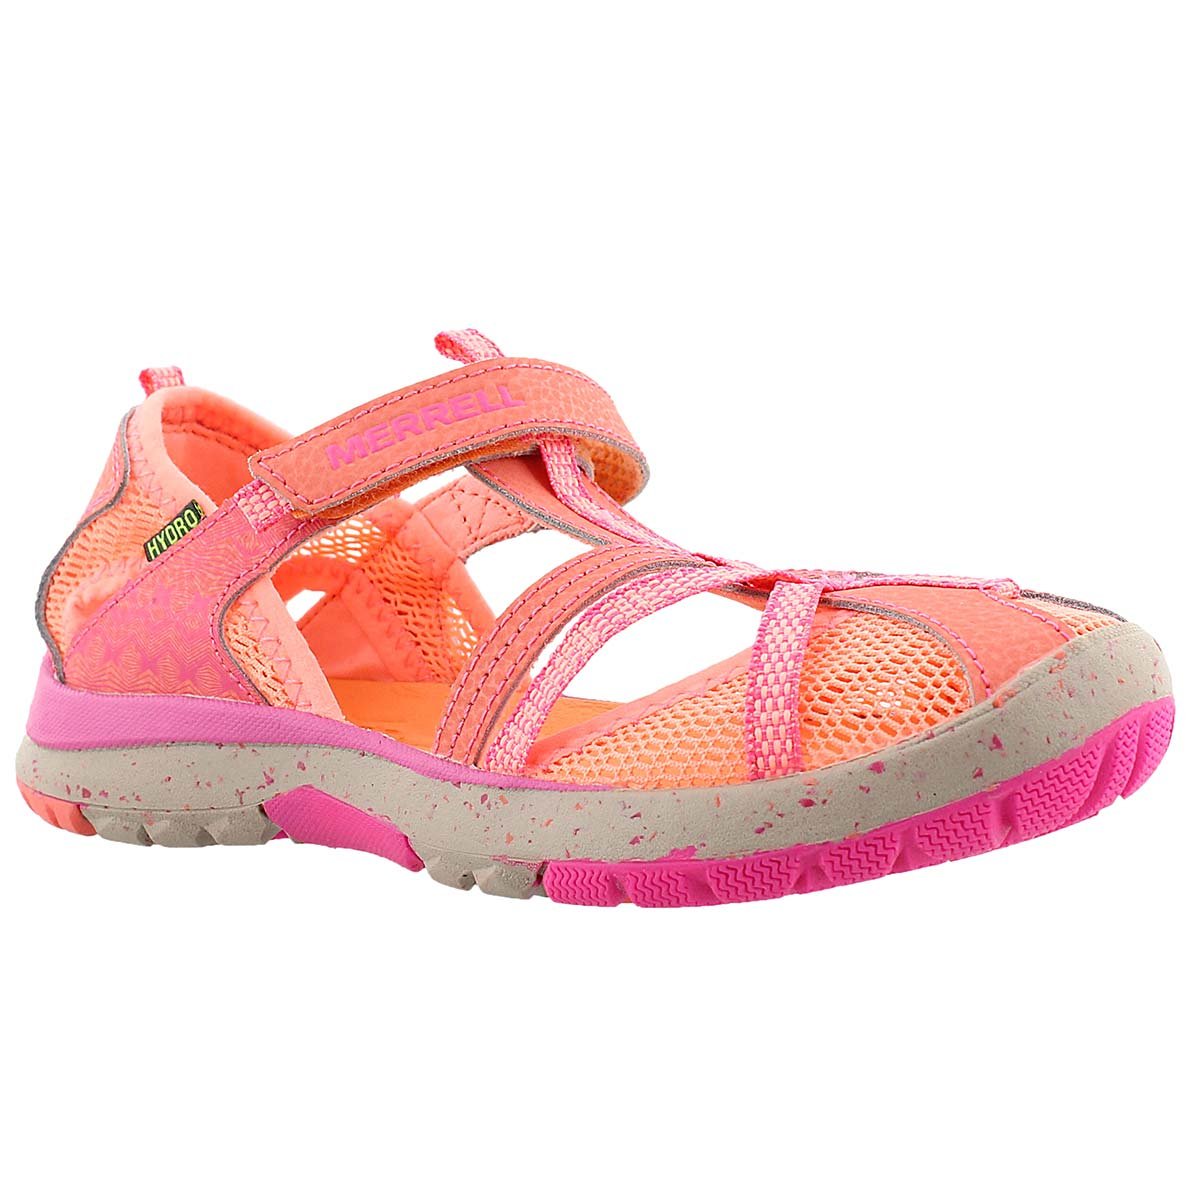 Girls' HYDRO MONARCH coral fisherman sandals